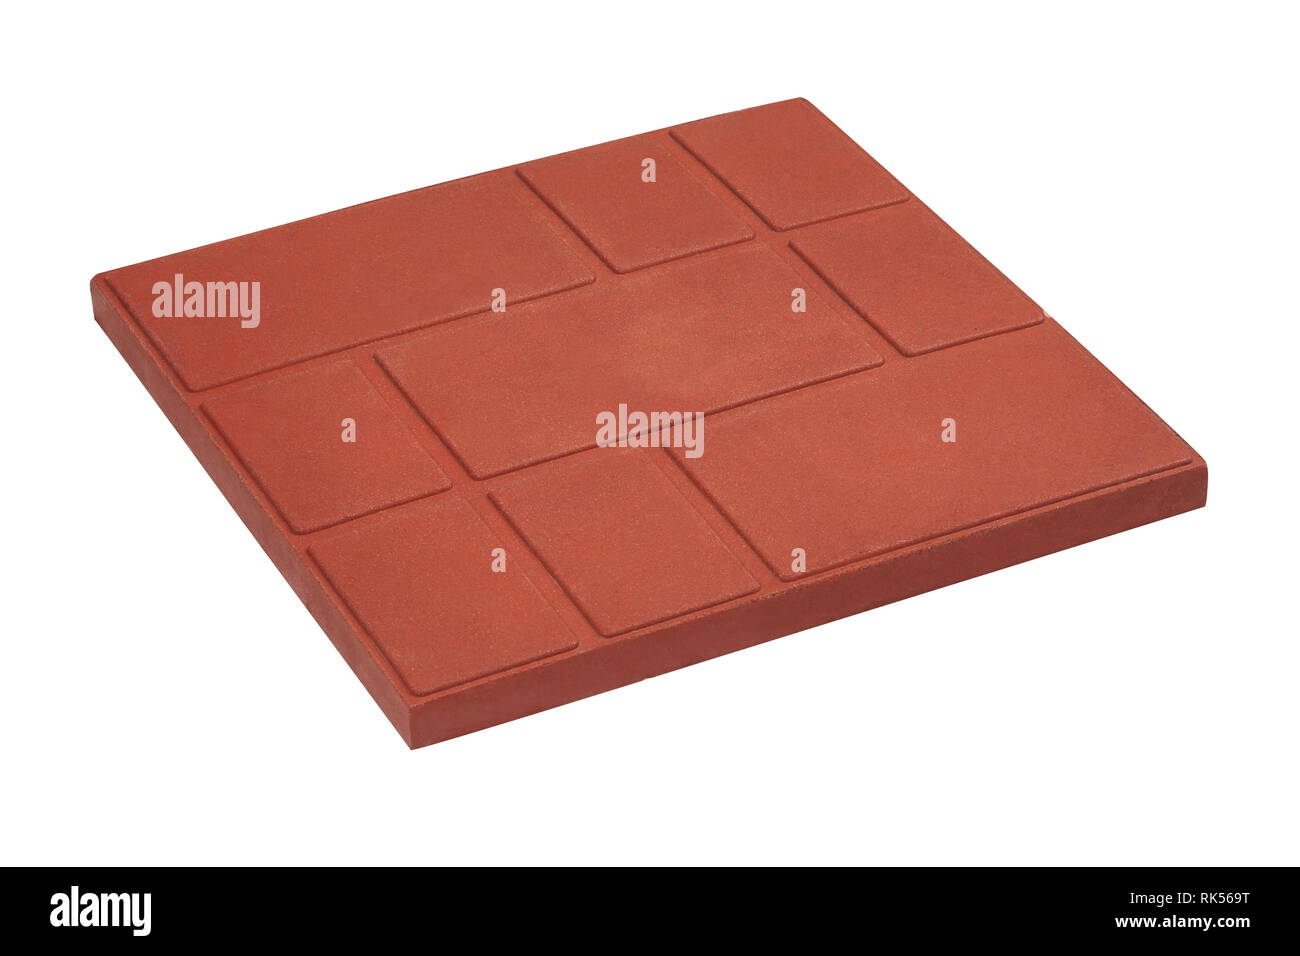 squared paving tile isolated, top view.  Sidewalk pavement pattern. Concrete Pavers   Sandstone Pavers   Granite Tiles - Stock Image